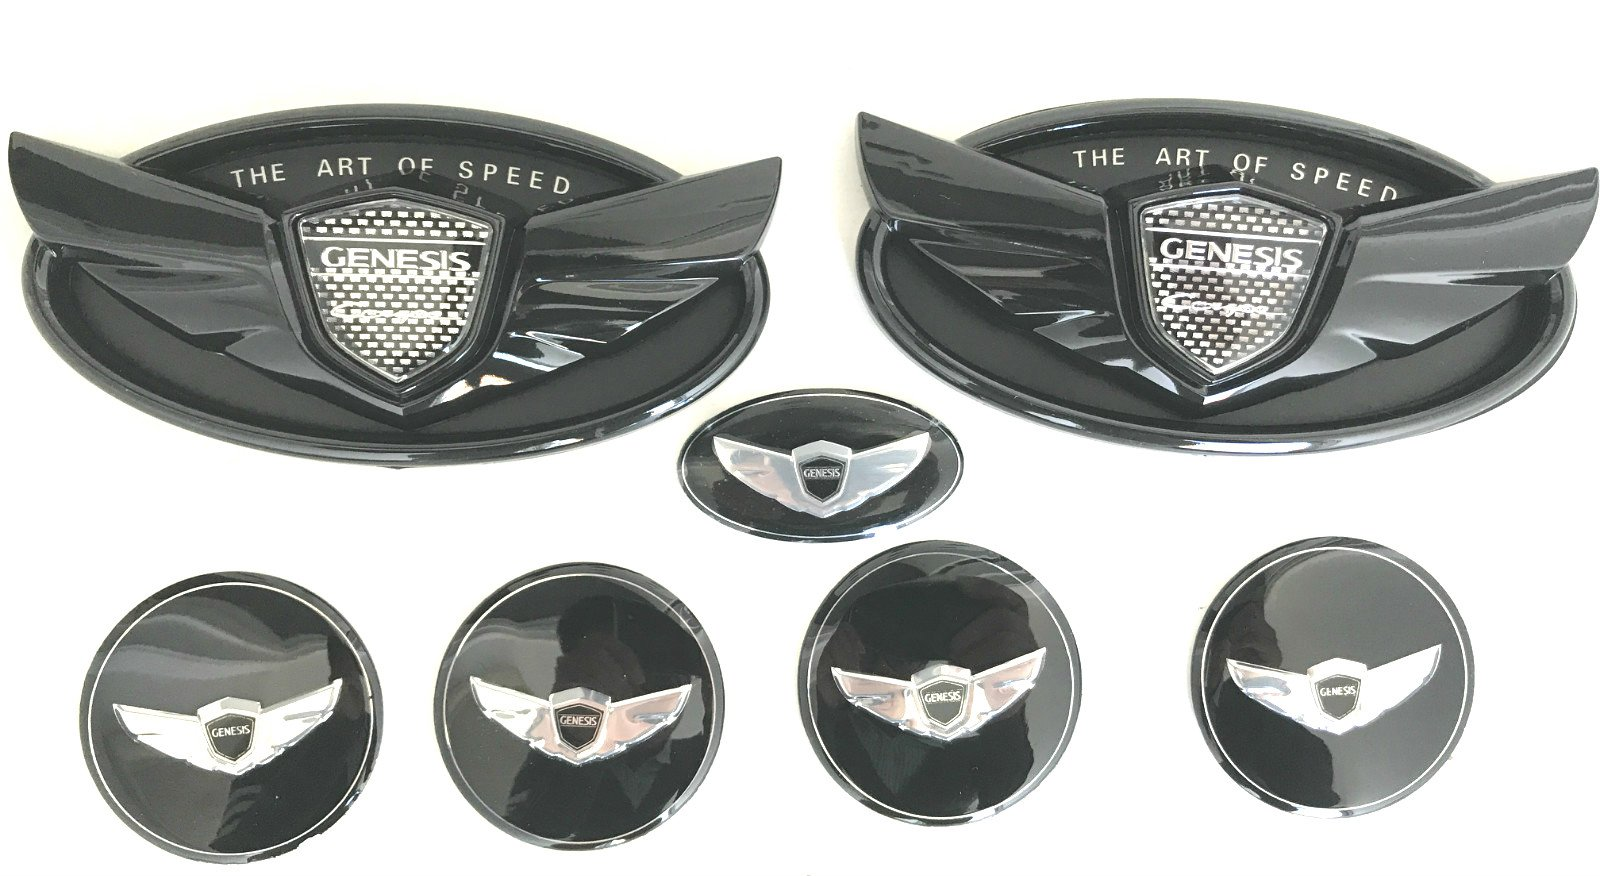 Exotic Store 7 Pieces 2010-2017 Fit for Black Hyundai Genesis ''ART OF SPEED''Coupe Chrome Black WING Logo Front+ Trunk+ Steering wheel+ Rim center Caps Stickers TURBO Kit Emblem Badges (BLACK)